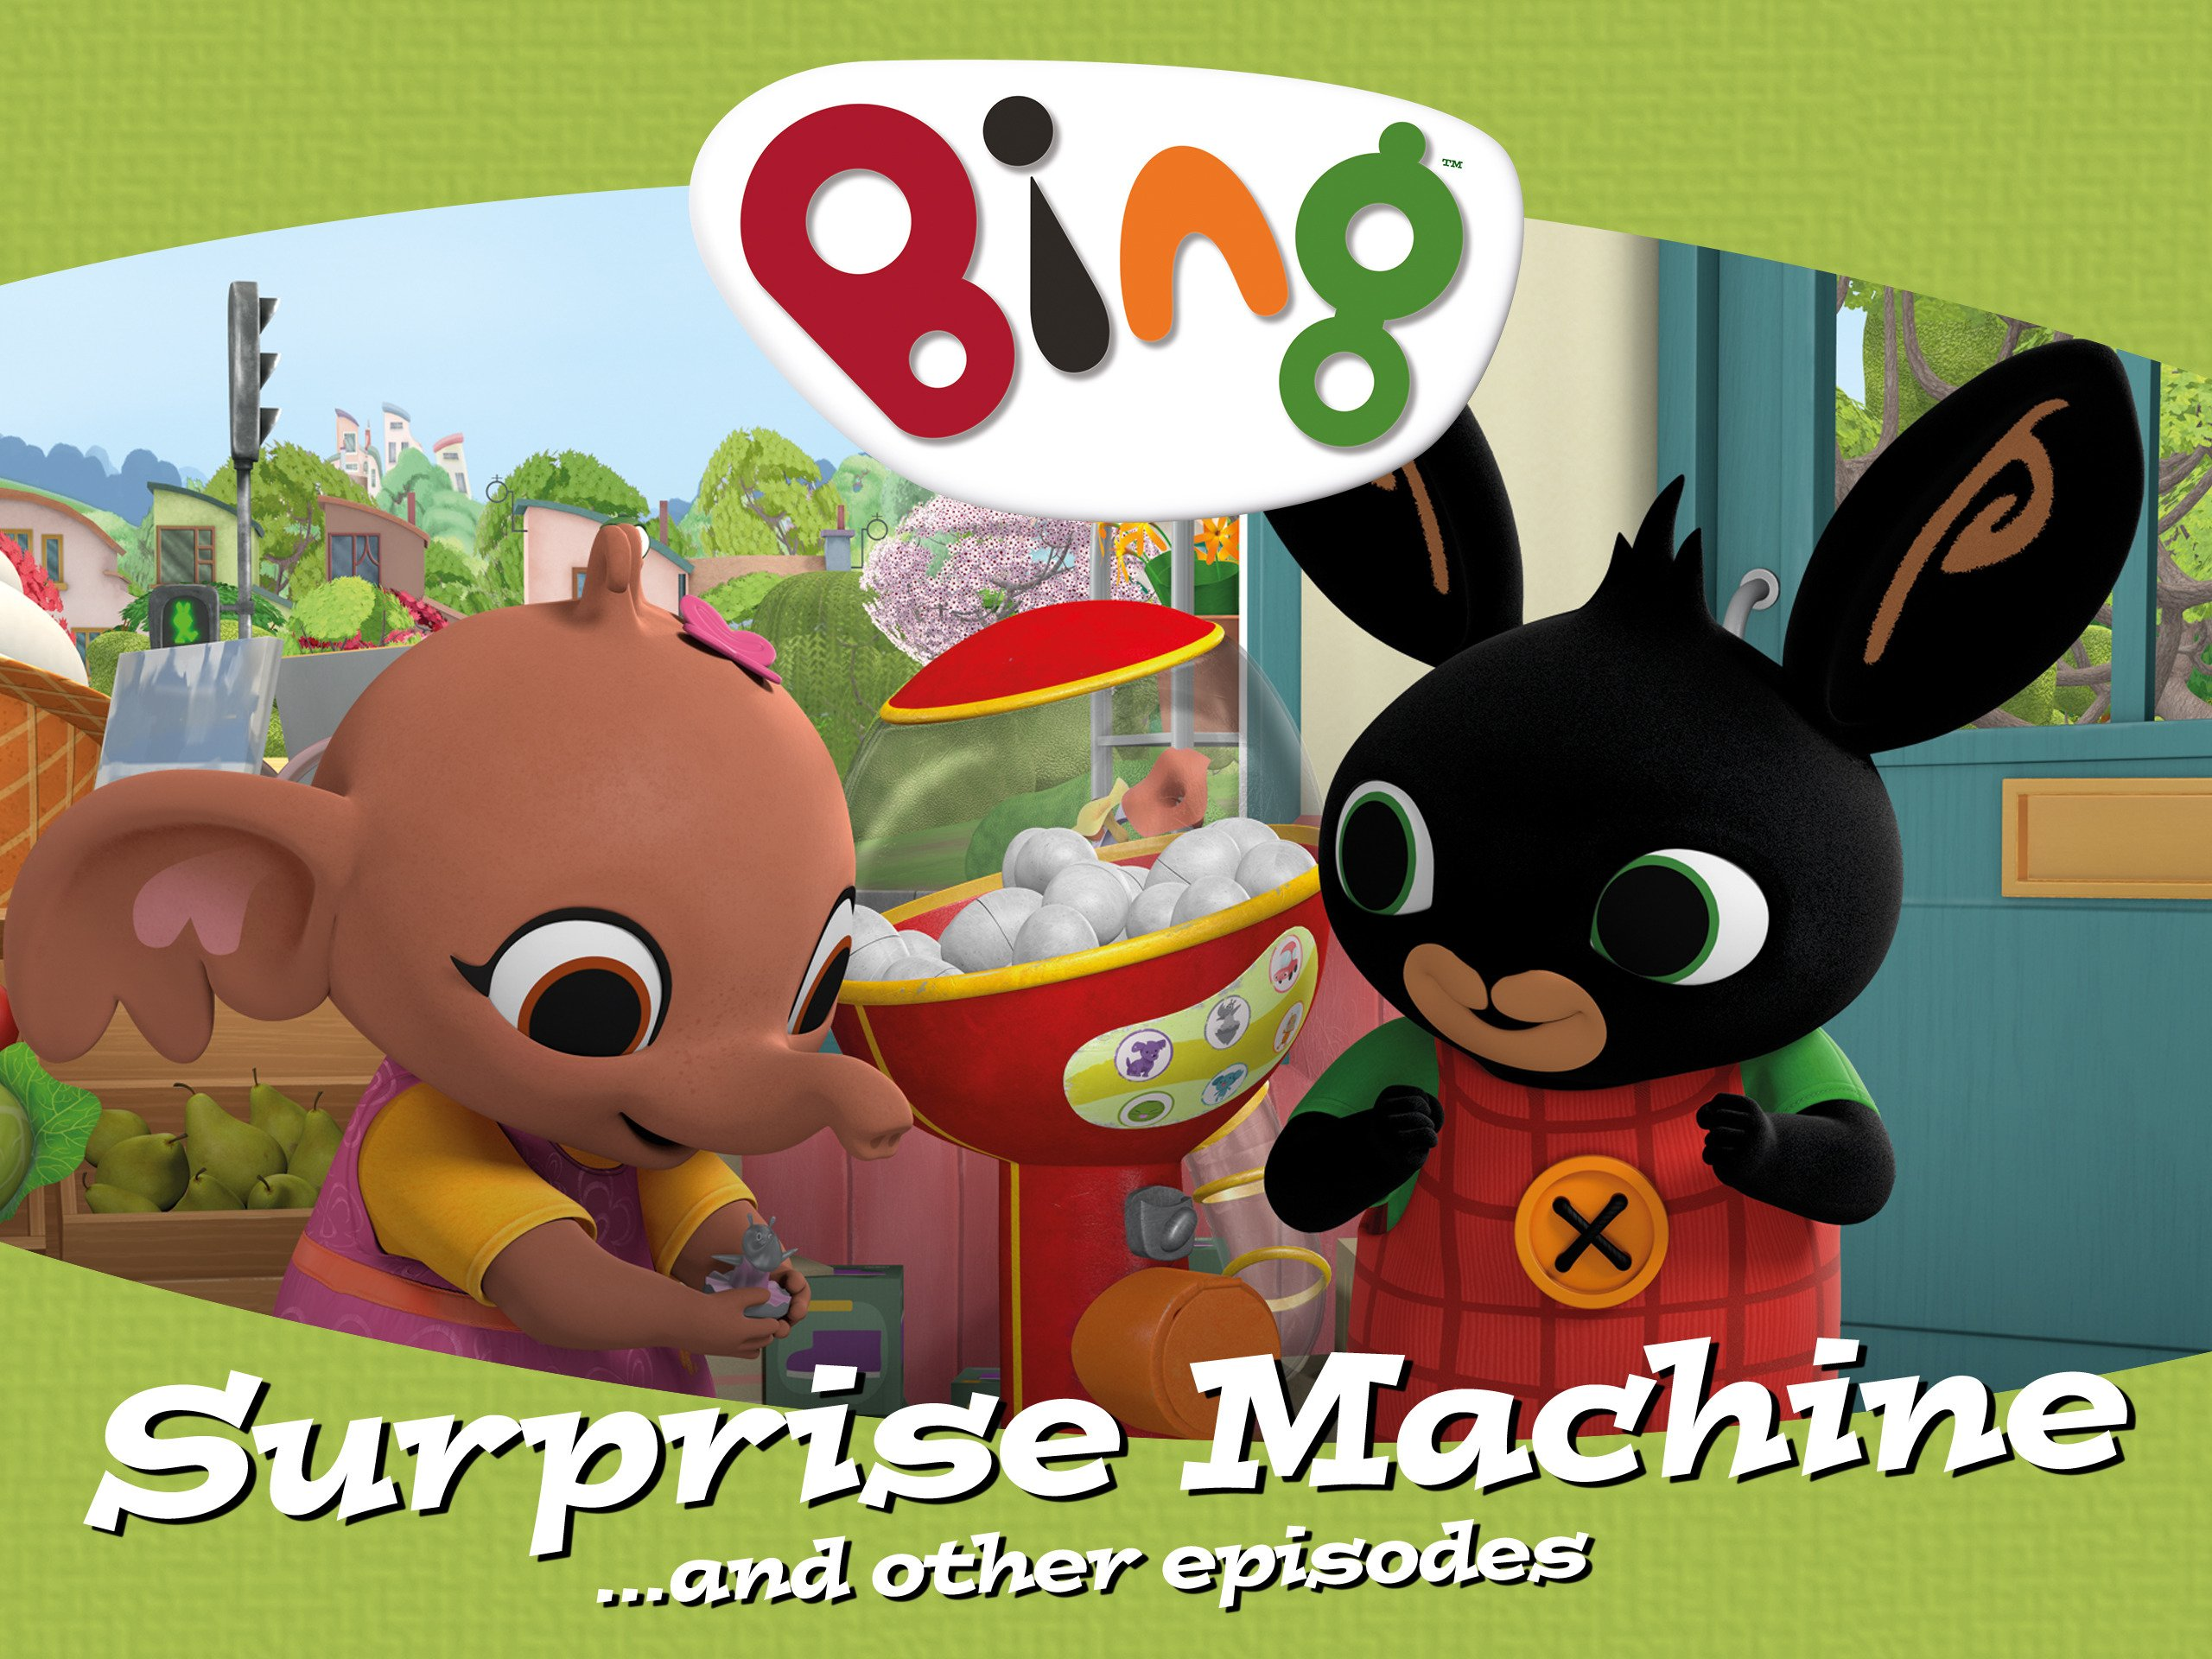 Bing Surprise Machine & Other Episodes - Season 5